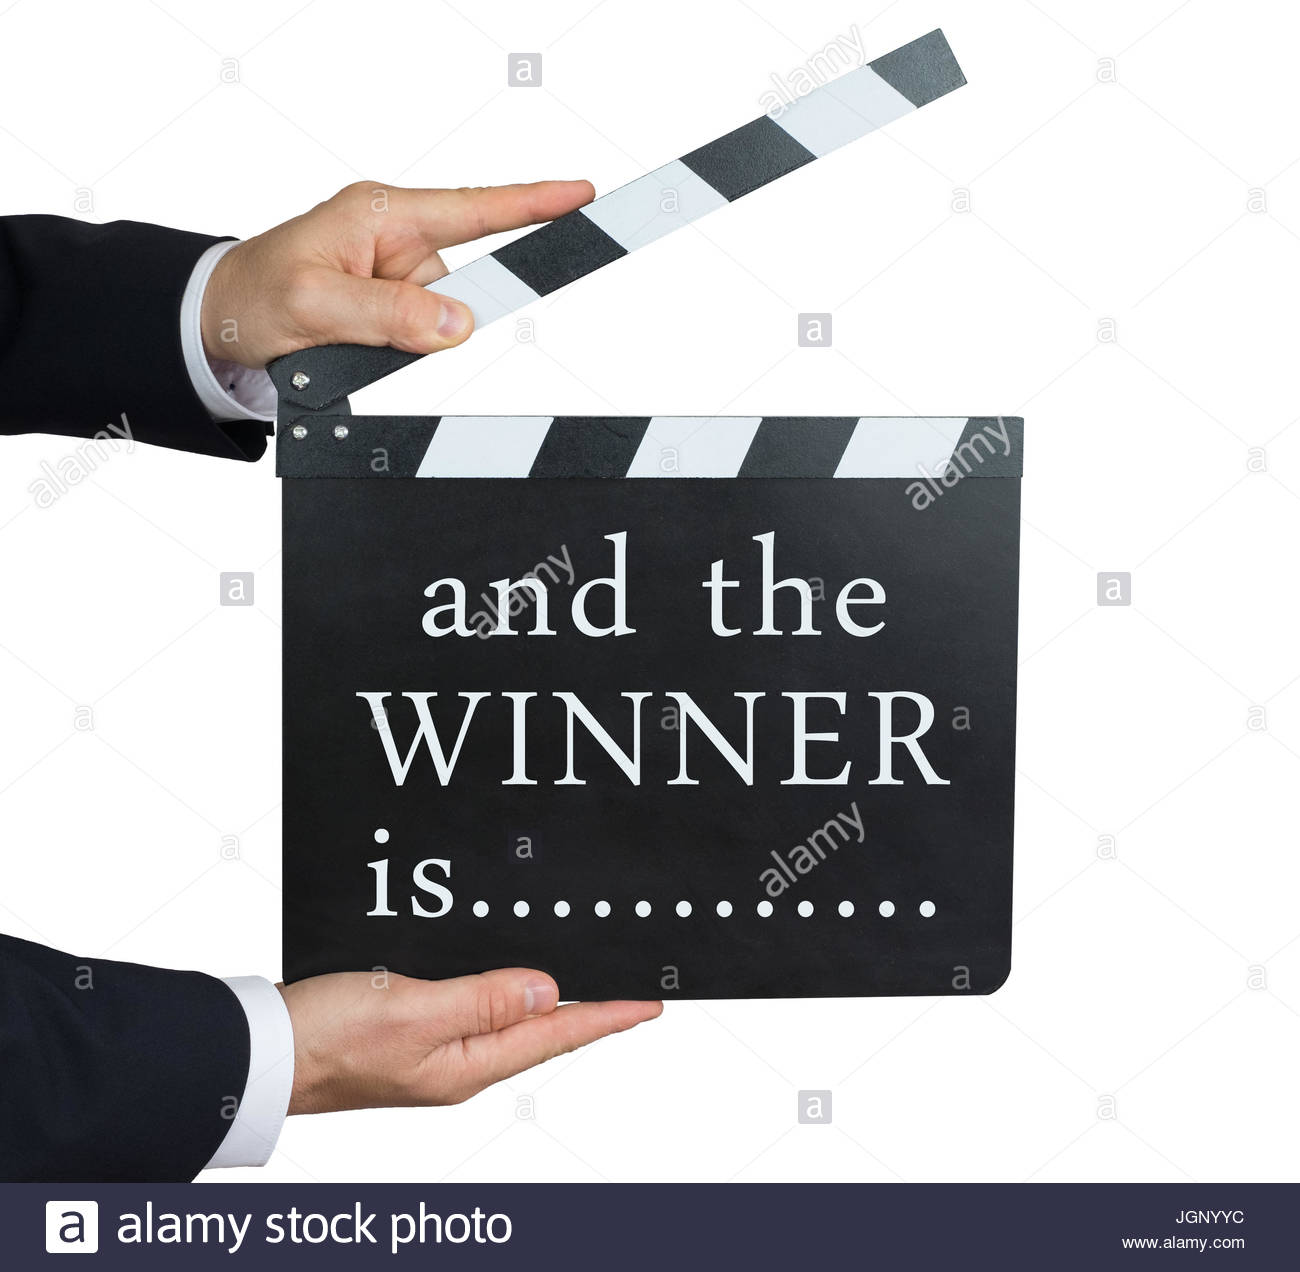 and the WINNER is - written on a clapperboard - Stock Image